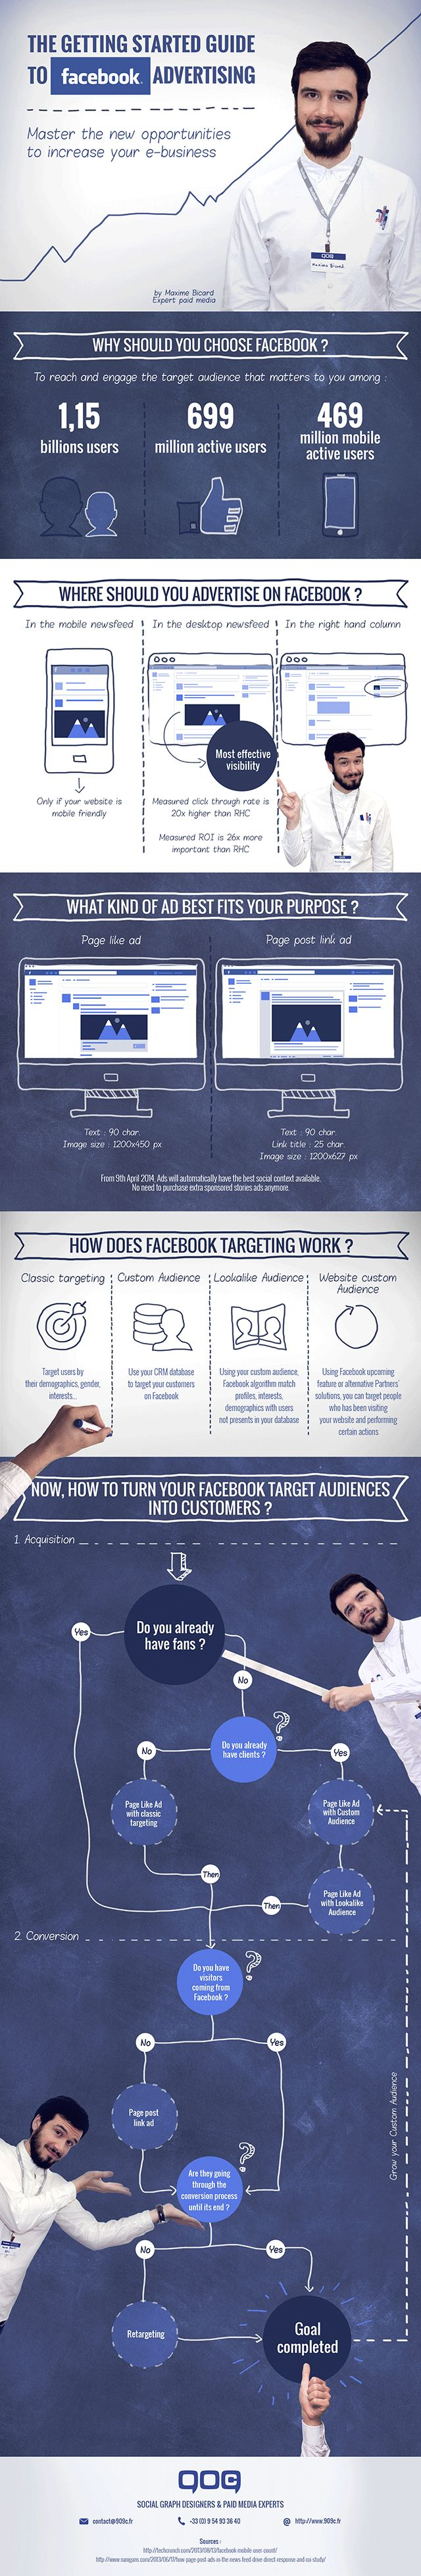 The getting started guide to #FaceBook advertising #infographic #marketing #socialmedia